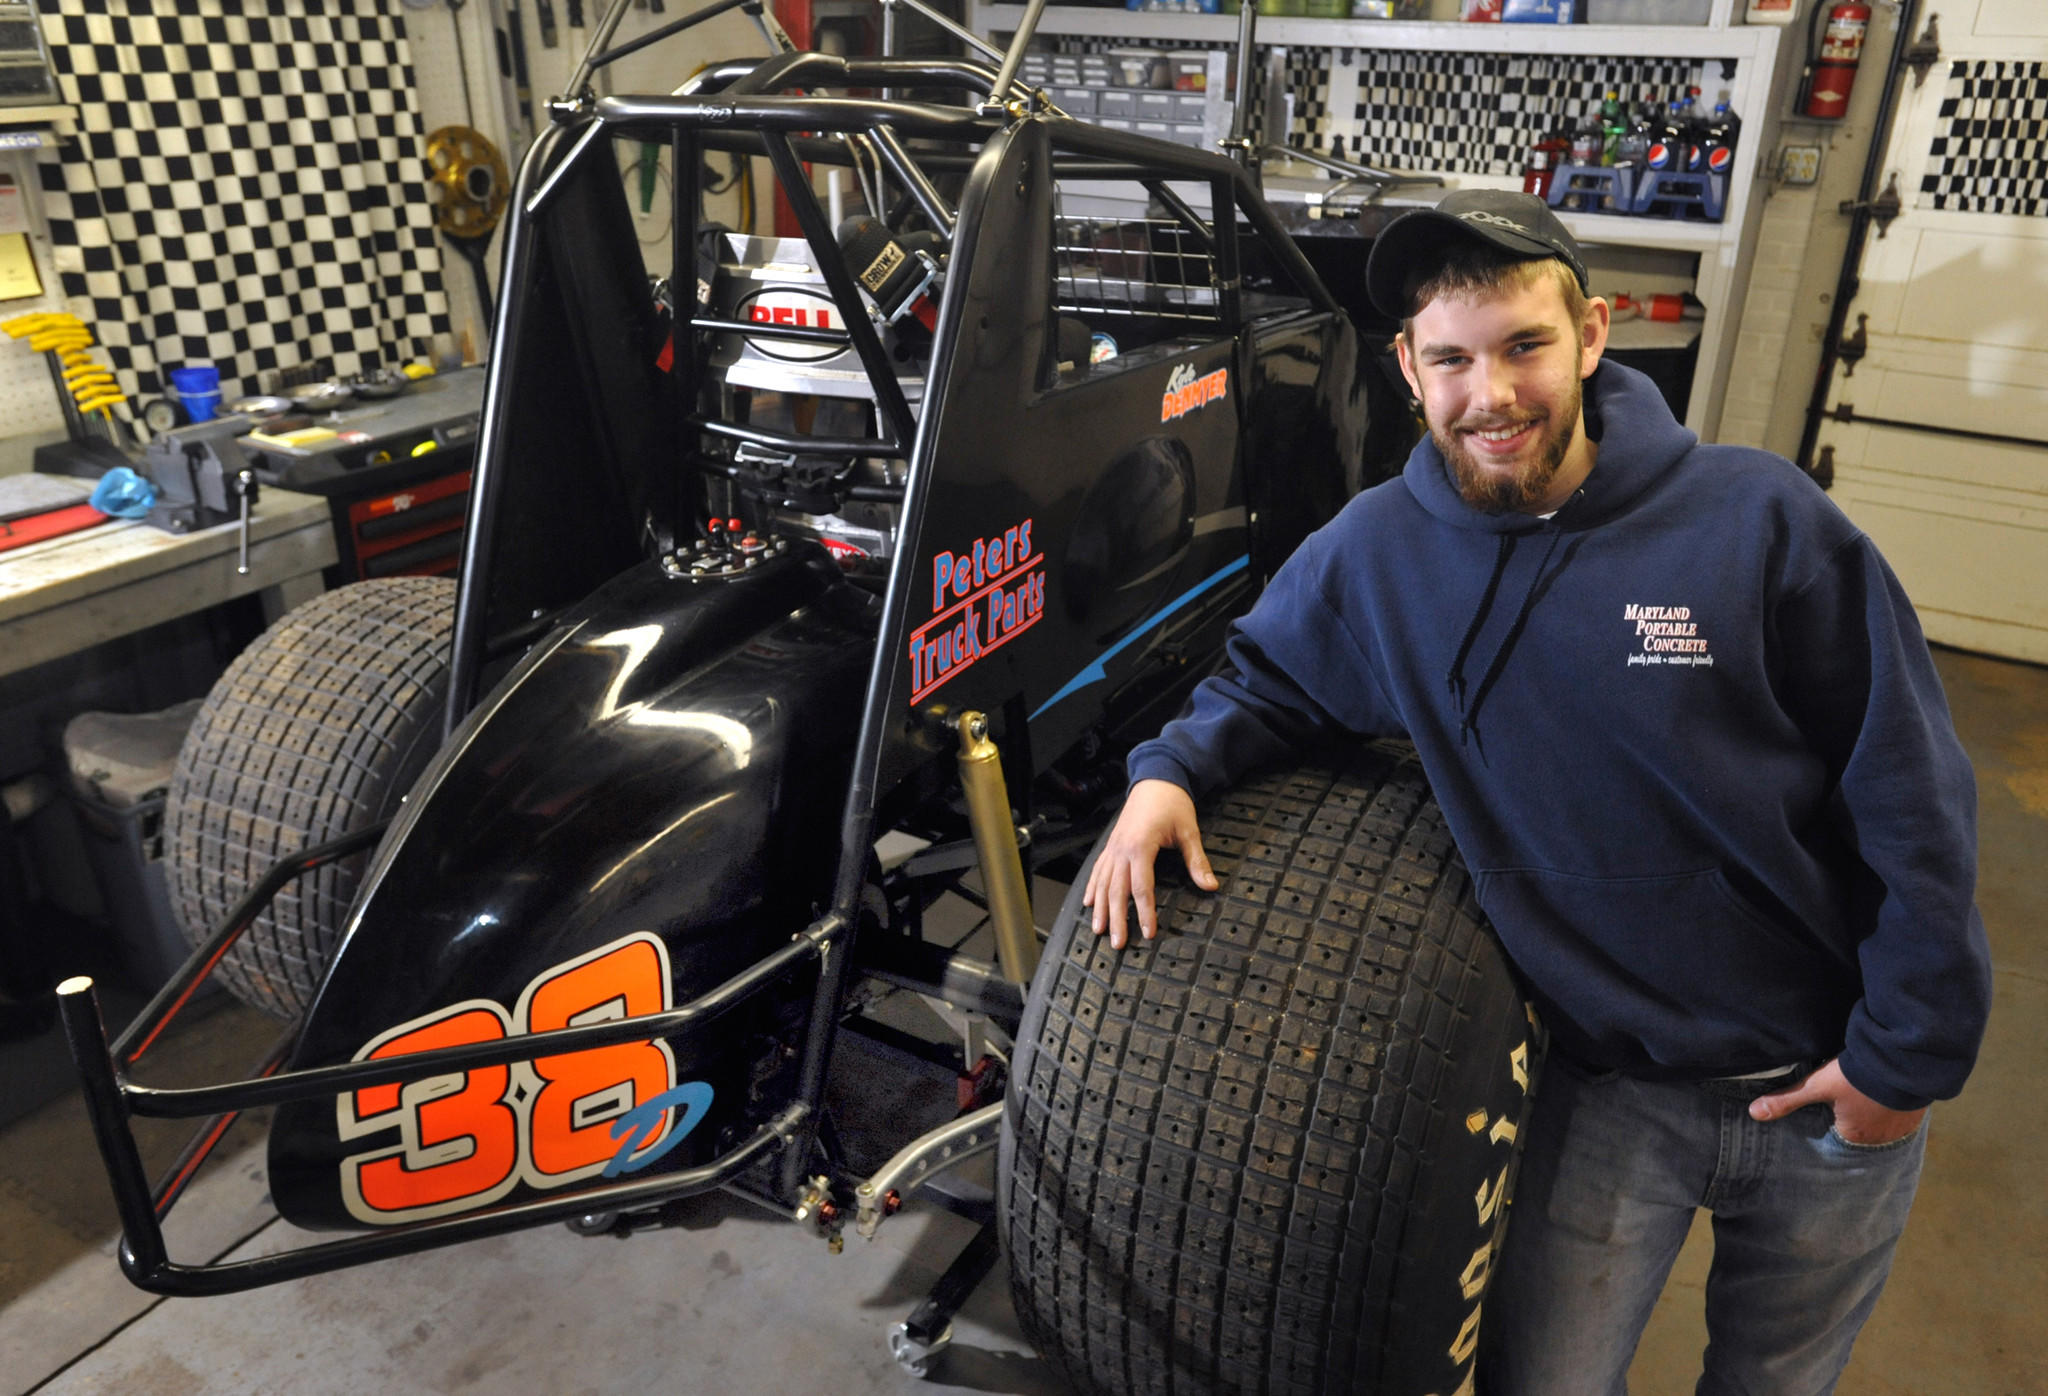 Kyle Denmyer, 16, in his family's garage with the 358 Sprint Car (700 horsepower) that he and his team are almost finished rebuilding. He's racing at Lincoln Speedway in Abbottstown, Pa.